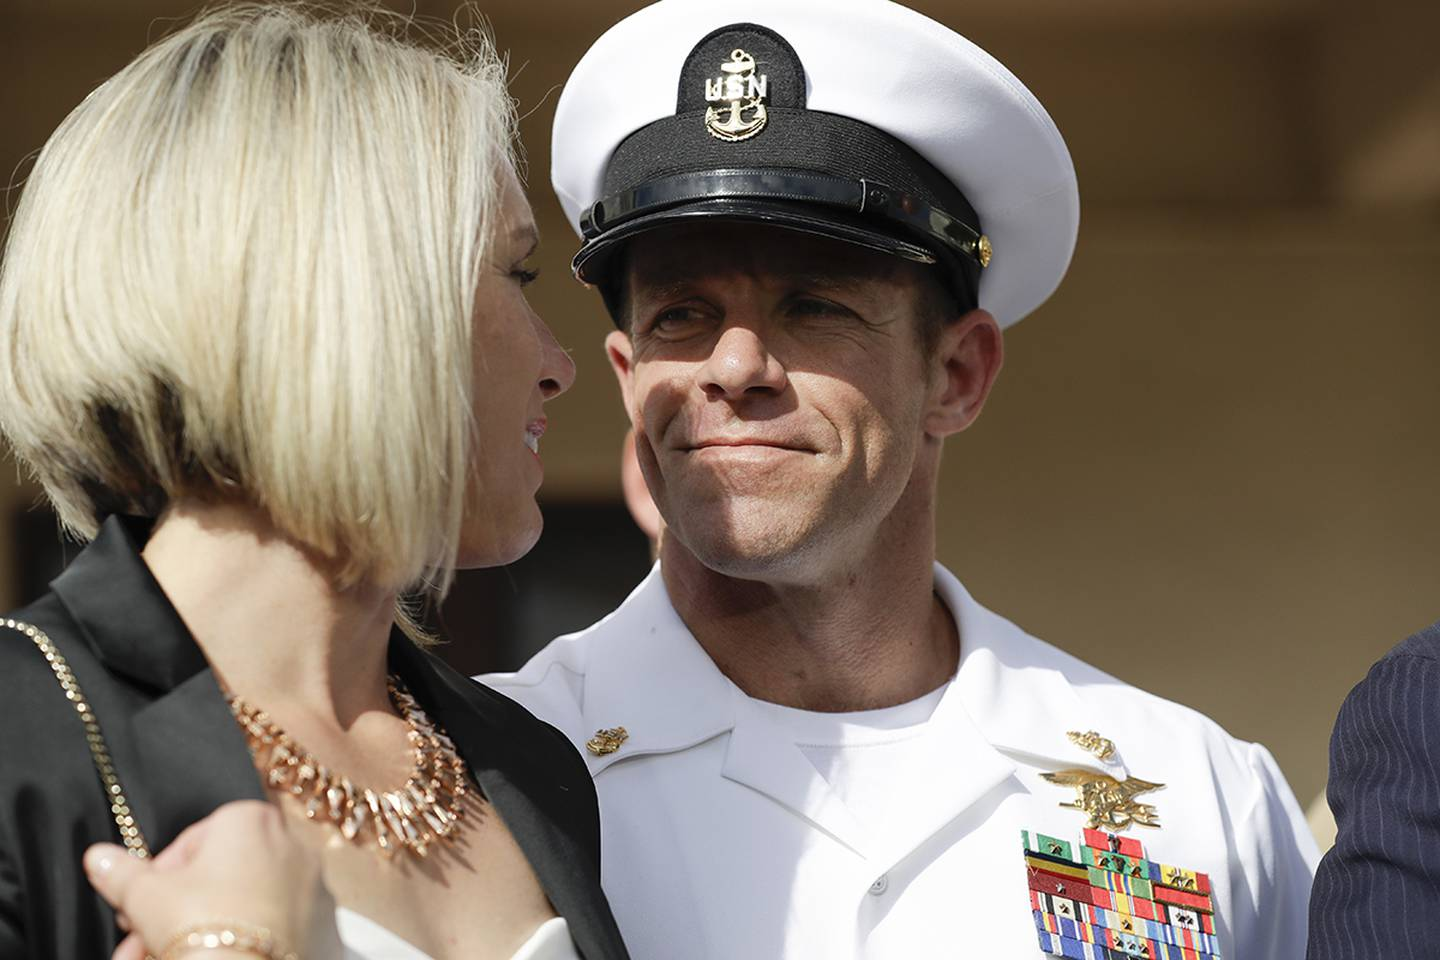 Navy Special Operations Chief Edward Gallagher, right, walks with his wife, Andrea Gallagher as they leave a military court on Naval Base San Diego, Tuesday, July 2, 2019, in San Diego.